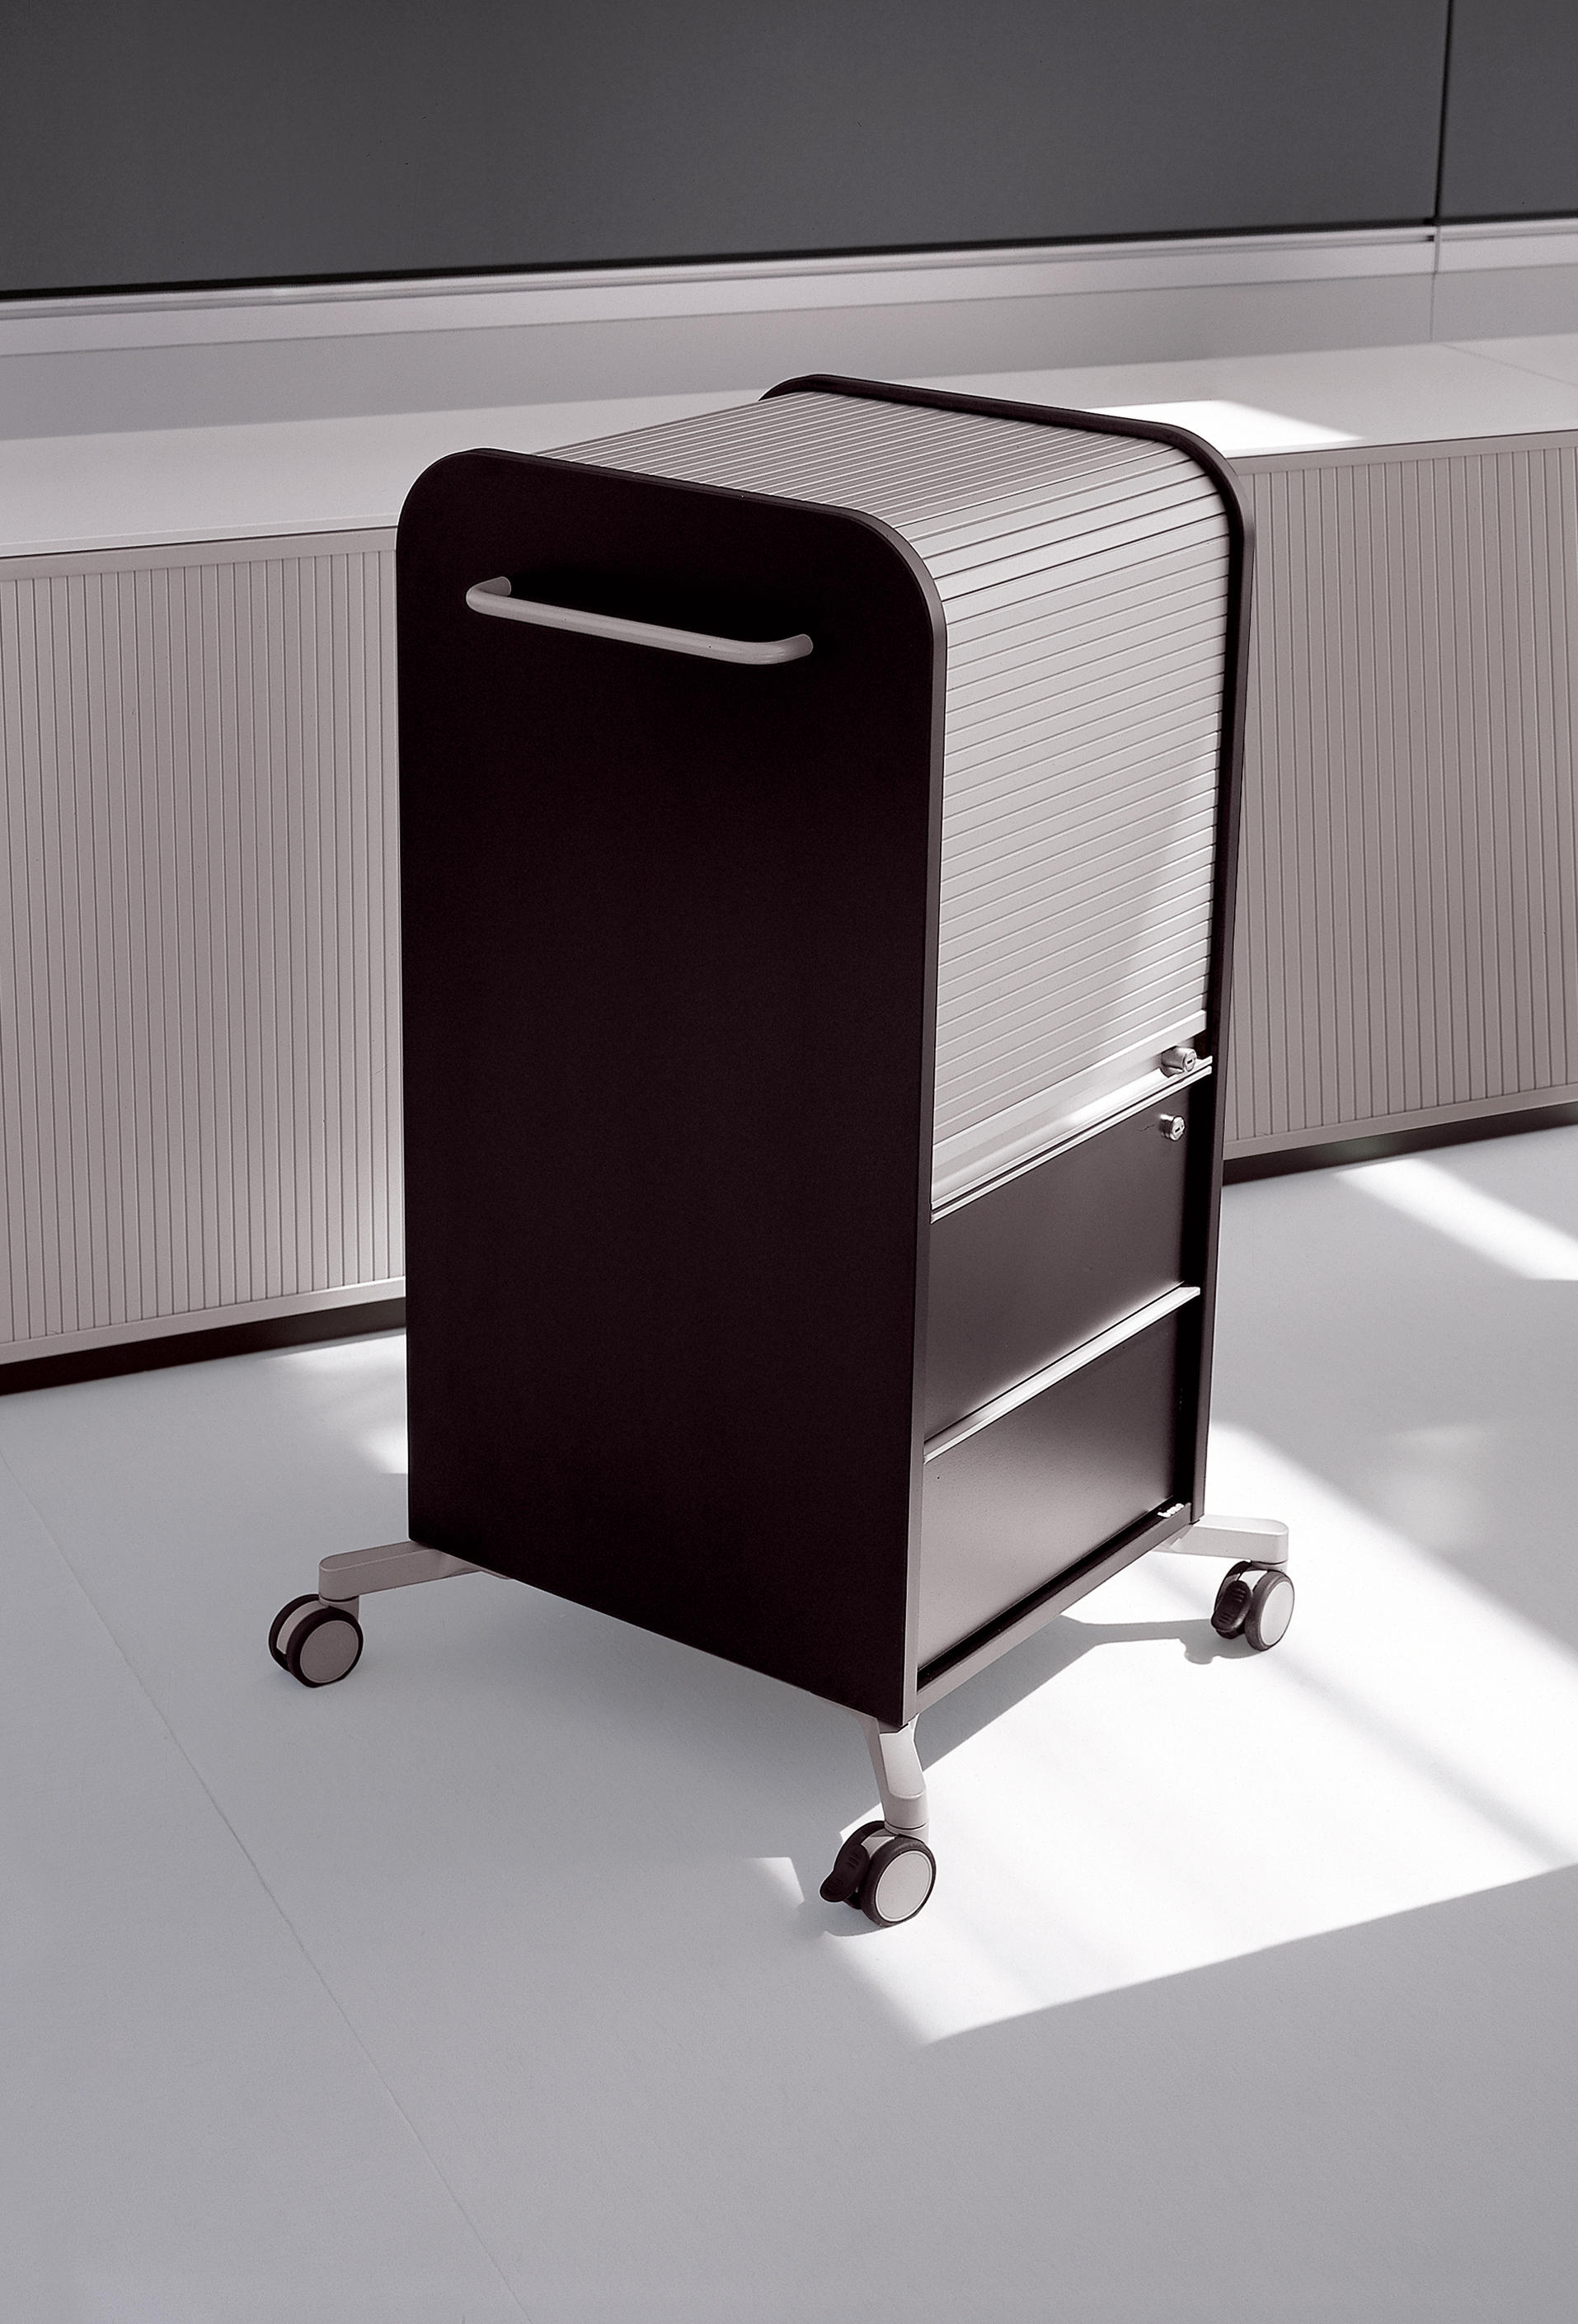 K2   CADDY - Pedestals from Bene   Architonic